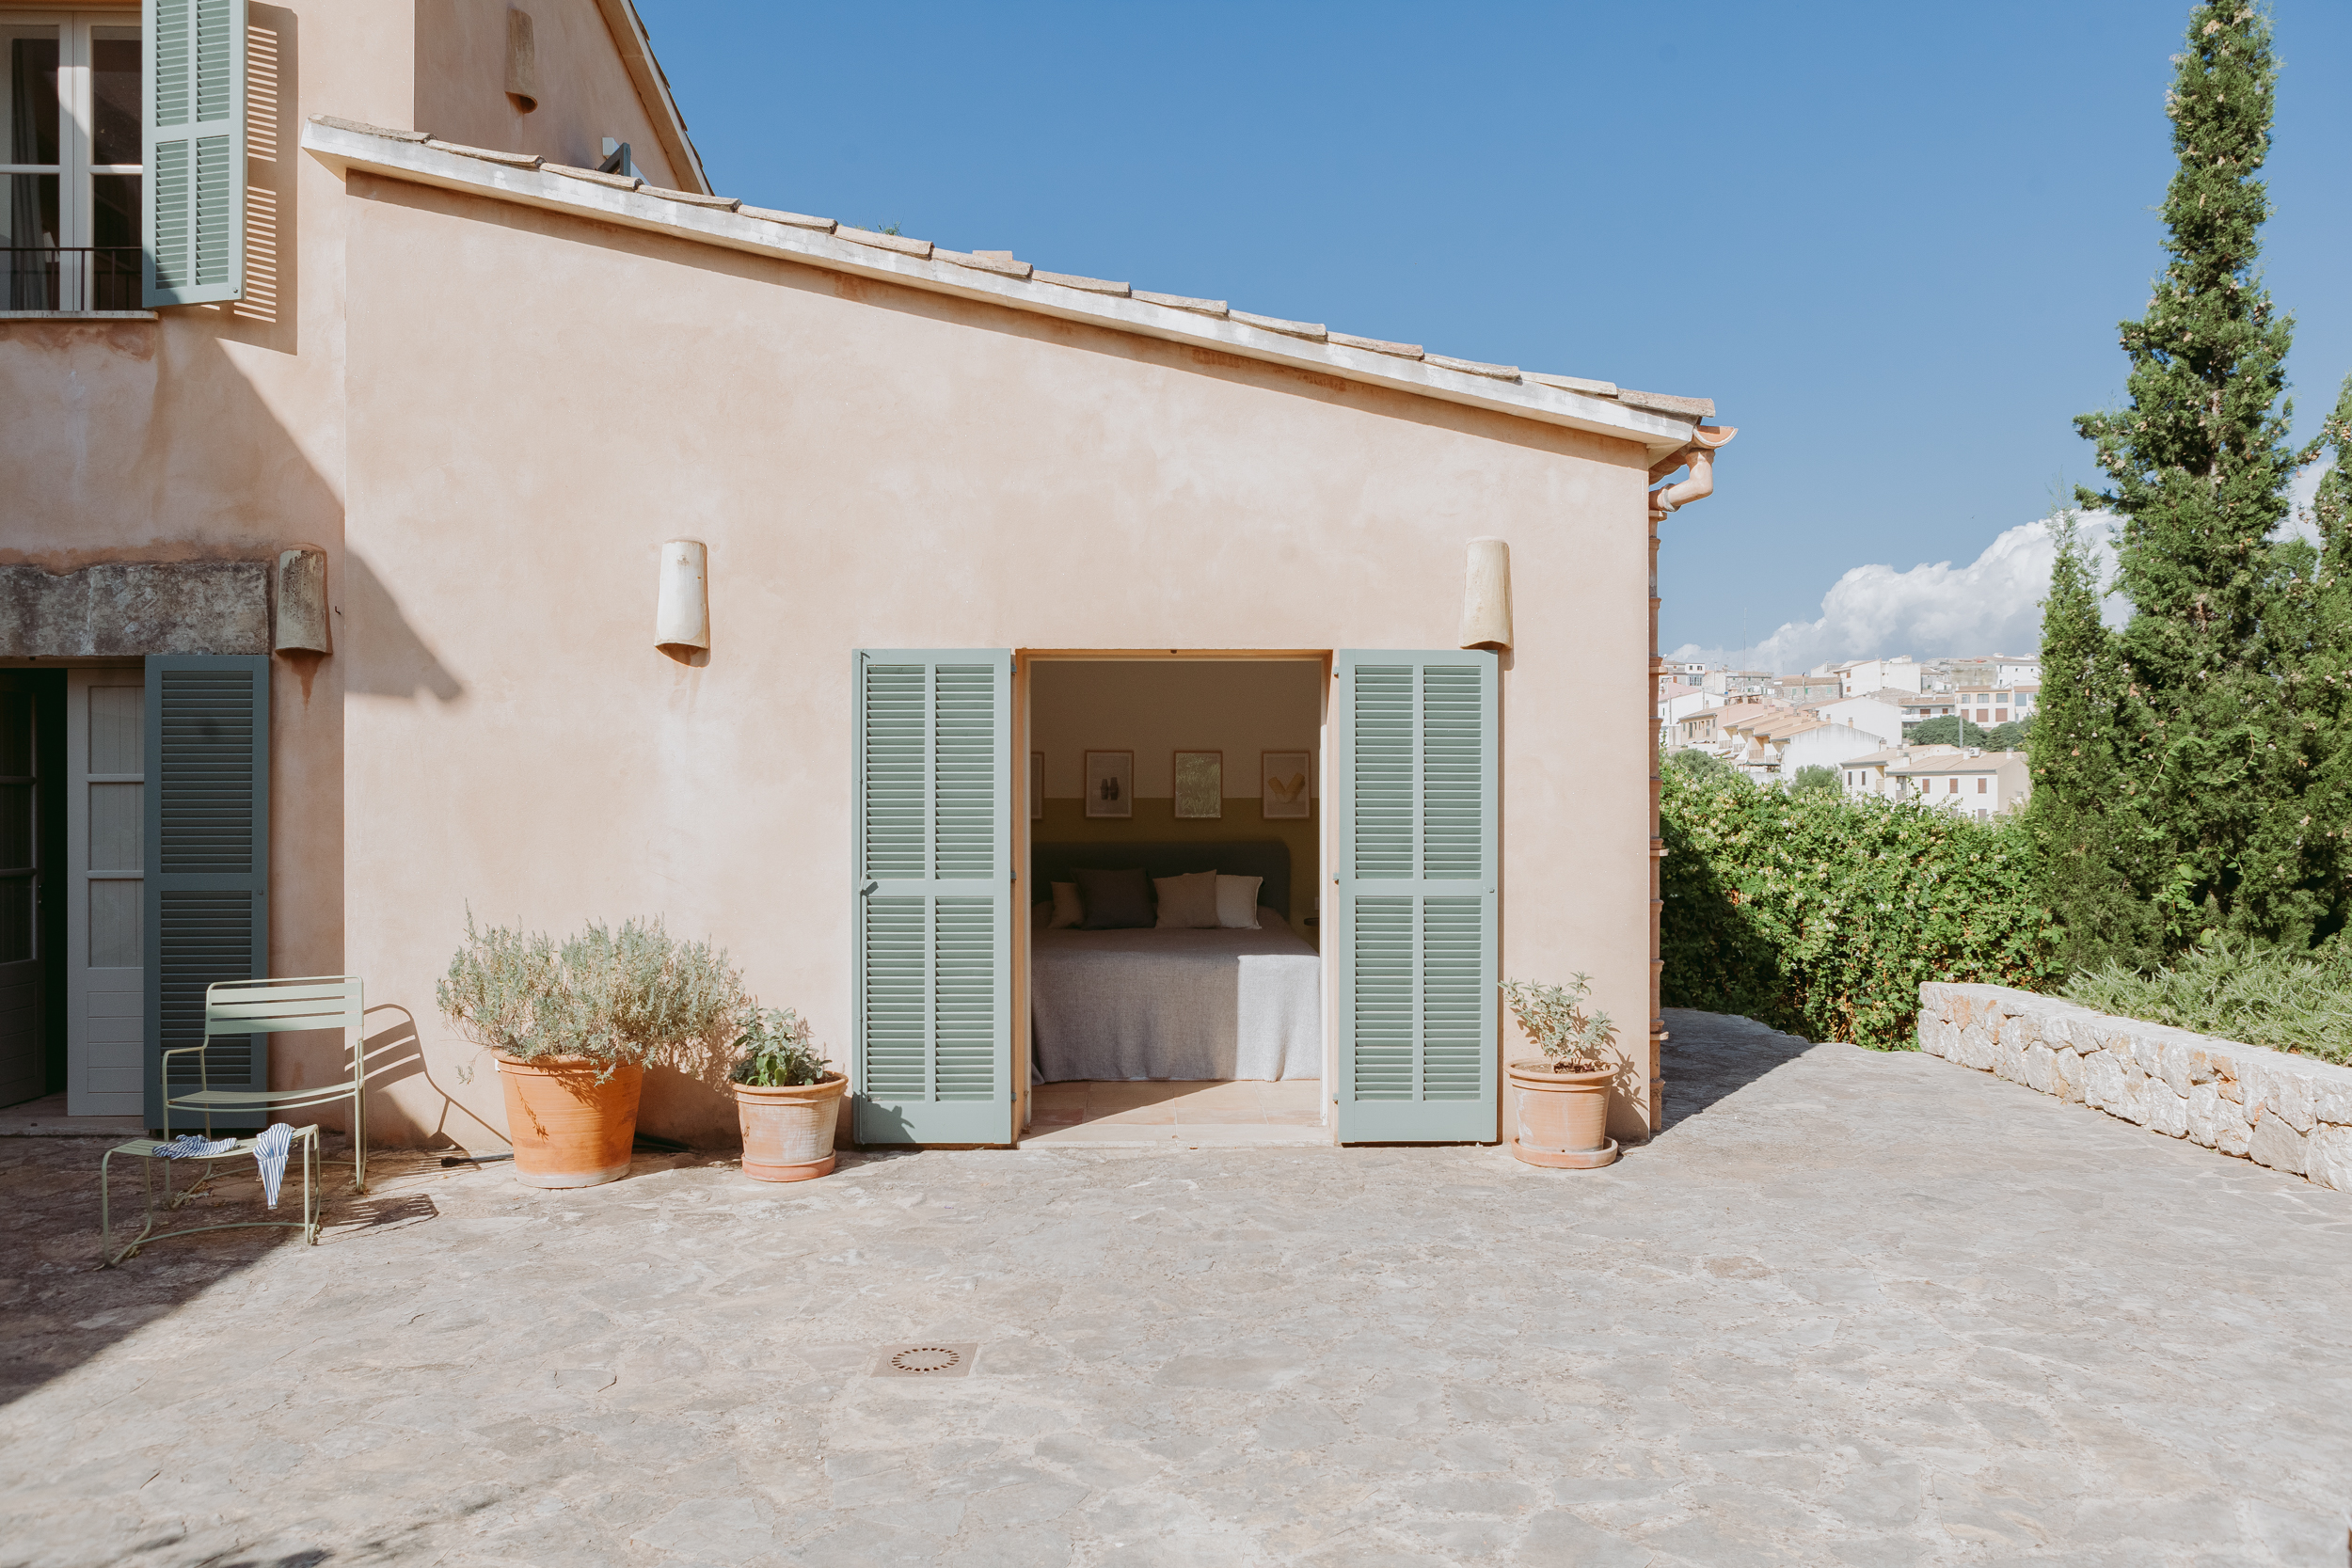 Can-Miret-2018-Mallorca-Holiday-House-Cee-Cee-Creative-IMG_6460_lowres